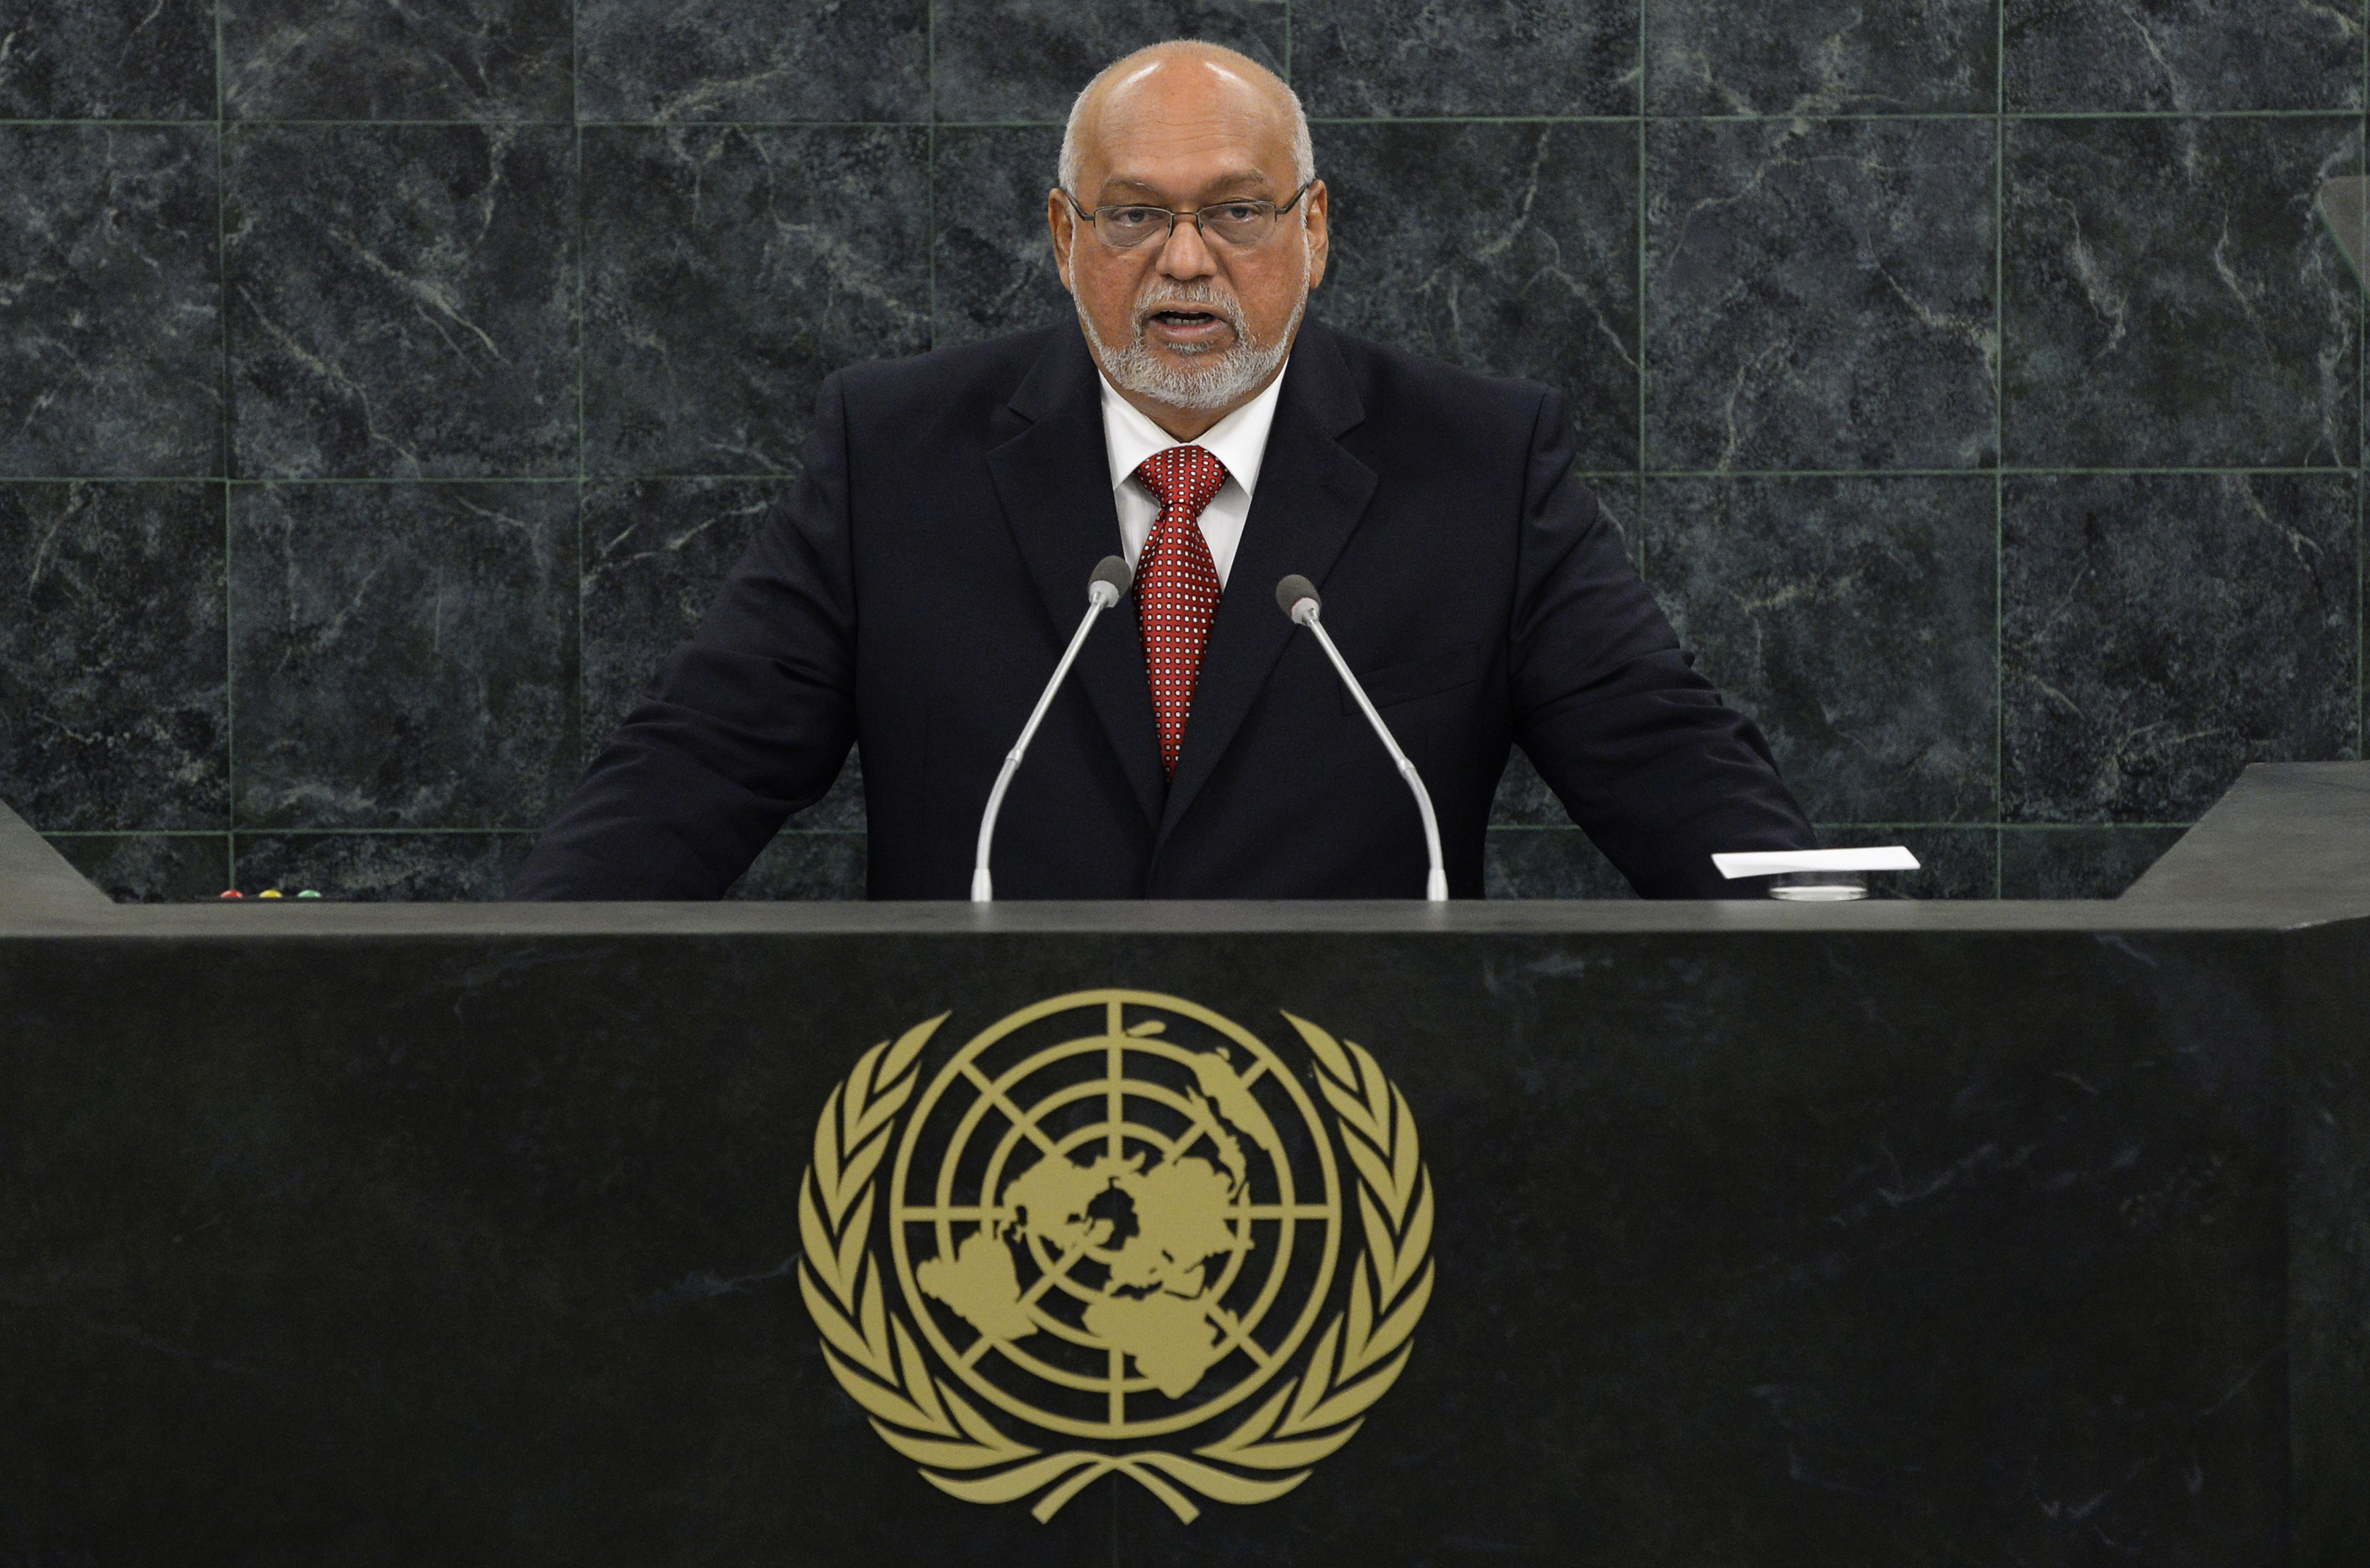 Donald Rabindranauth Ramotar, President of the Republic of Guyana, addresses the 68th United Nations General Assembly at U.N. headquarters in New York, September 26, 2013.